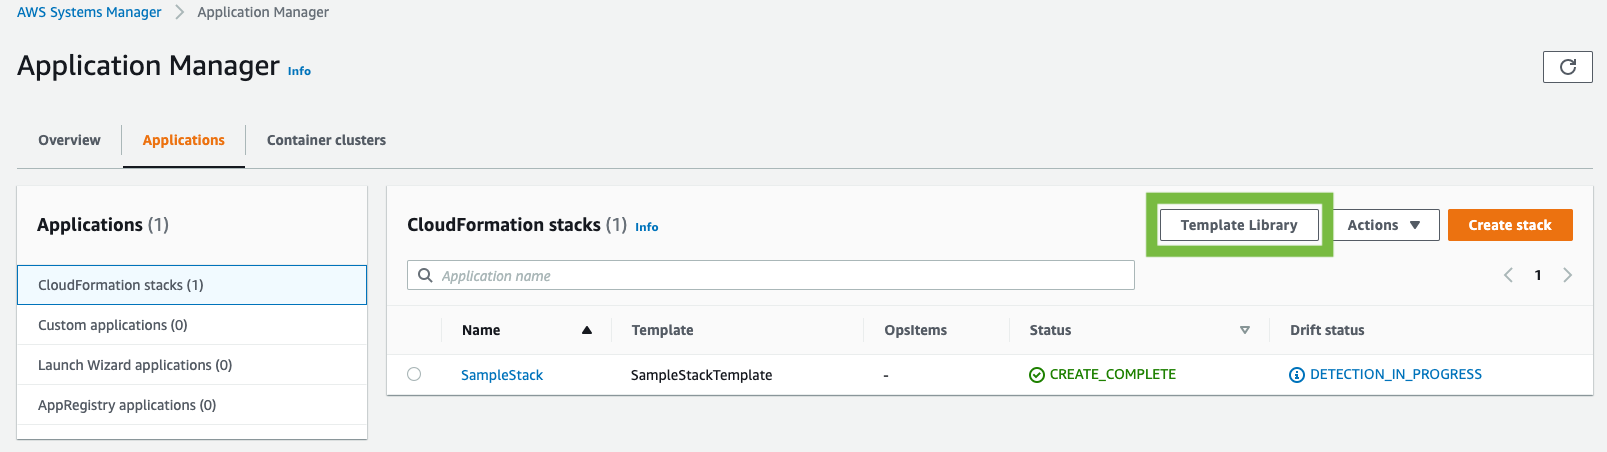 The Application Manager page includes Overview, Applications, and Container clusters tabs and Template Library and Create stack buttons. Under CloudFormation stacks, a stack named SampleStack is displayed with a status of CREATE_COMPLETE.